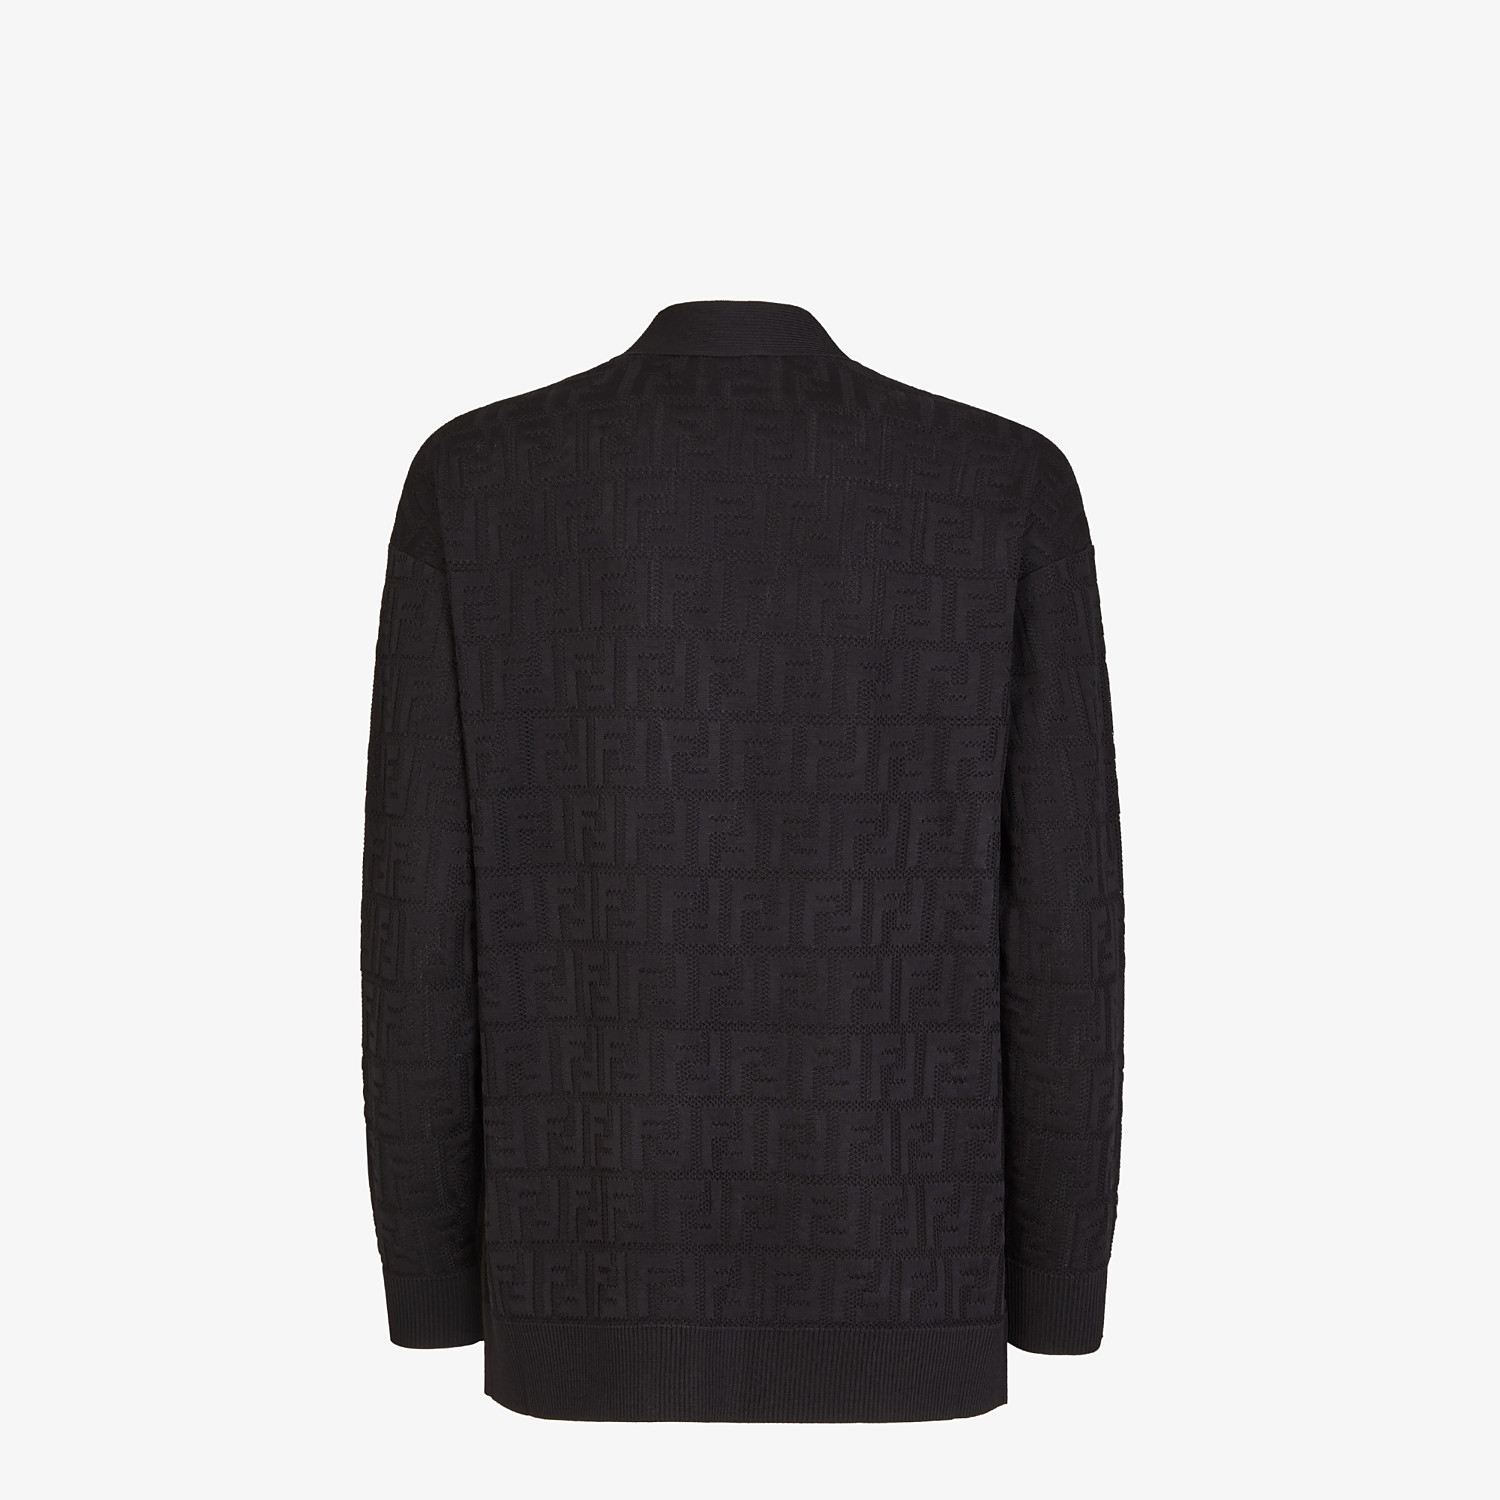 FENDI CARDIGAN - Black viscose and cotton cardigan - view 2 detail